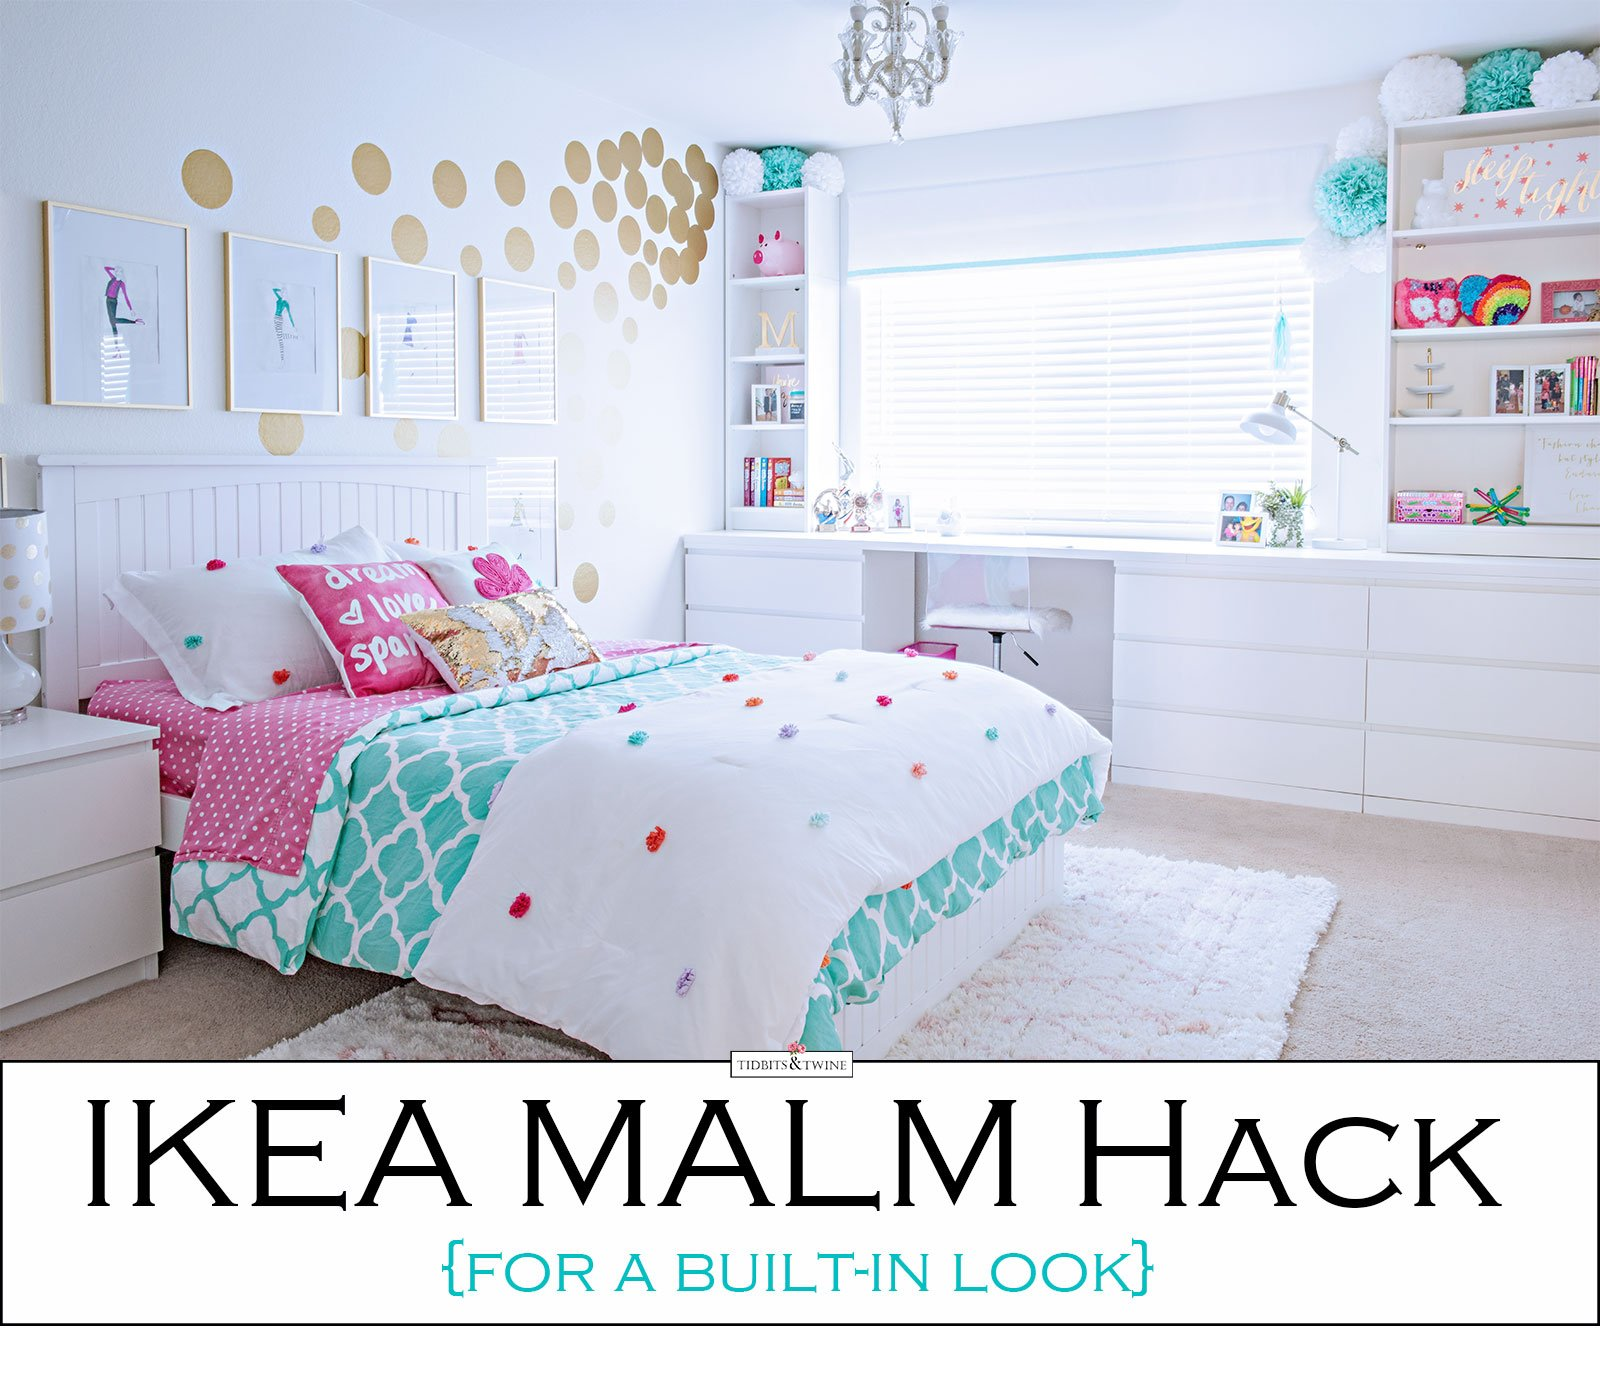 ikea hack for a built in look tidbits twine. Black Bedroom Furniture Sets. Home Design Ideas